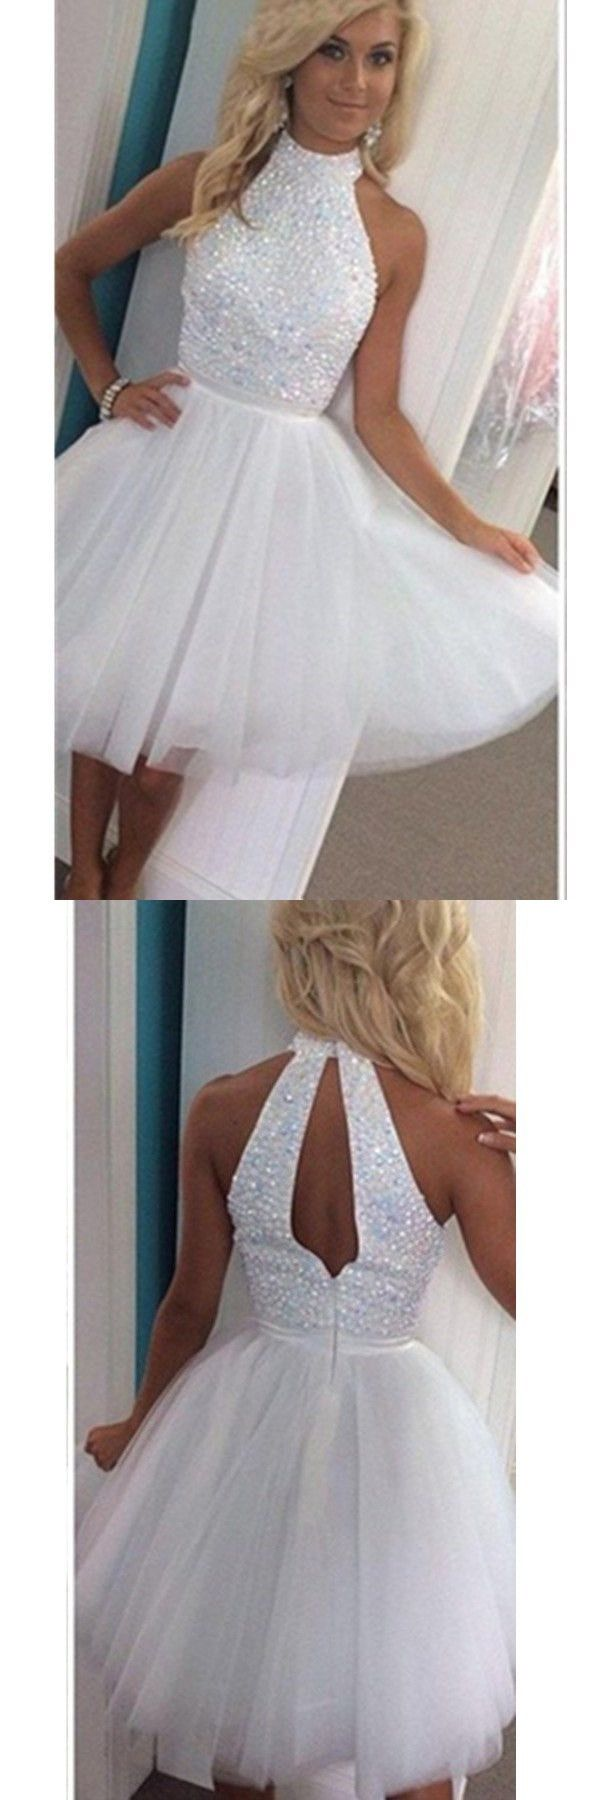 White Beading Homecoming DressHalter Short Prom Dress Puffy Skirt